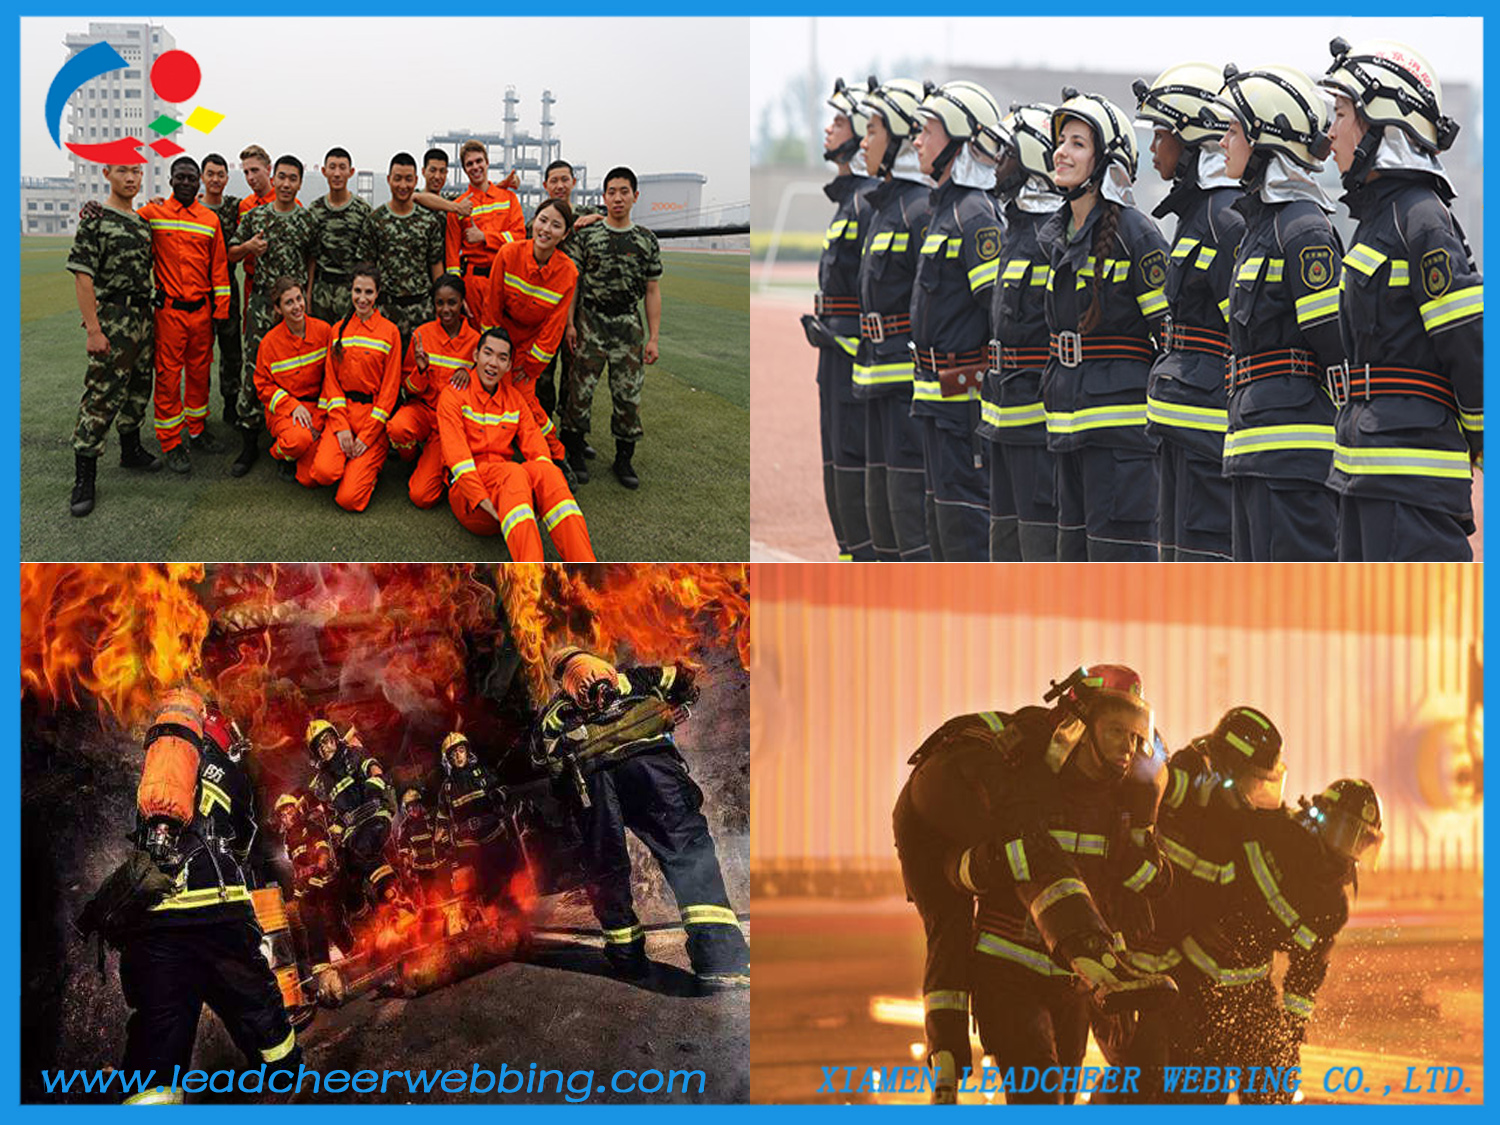 firefighter uniform reflective tapes